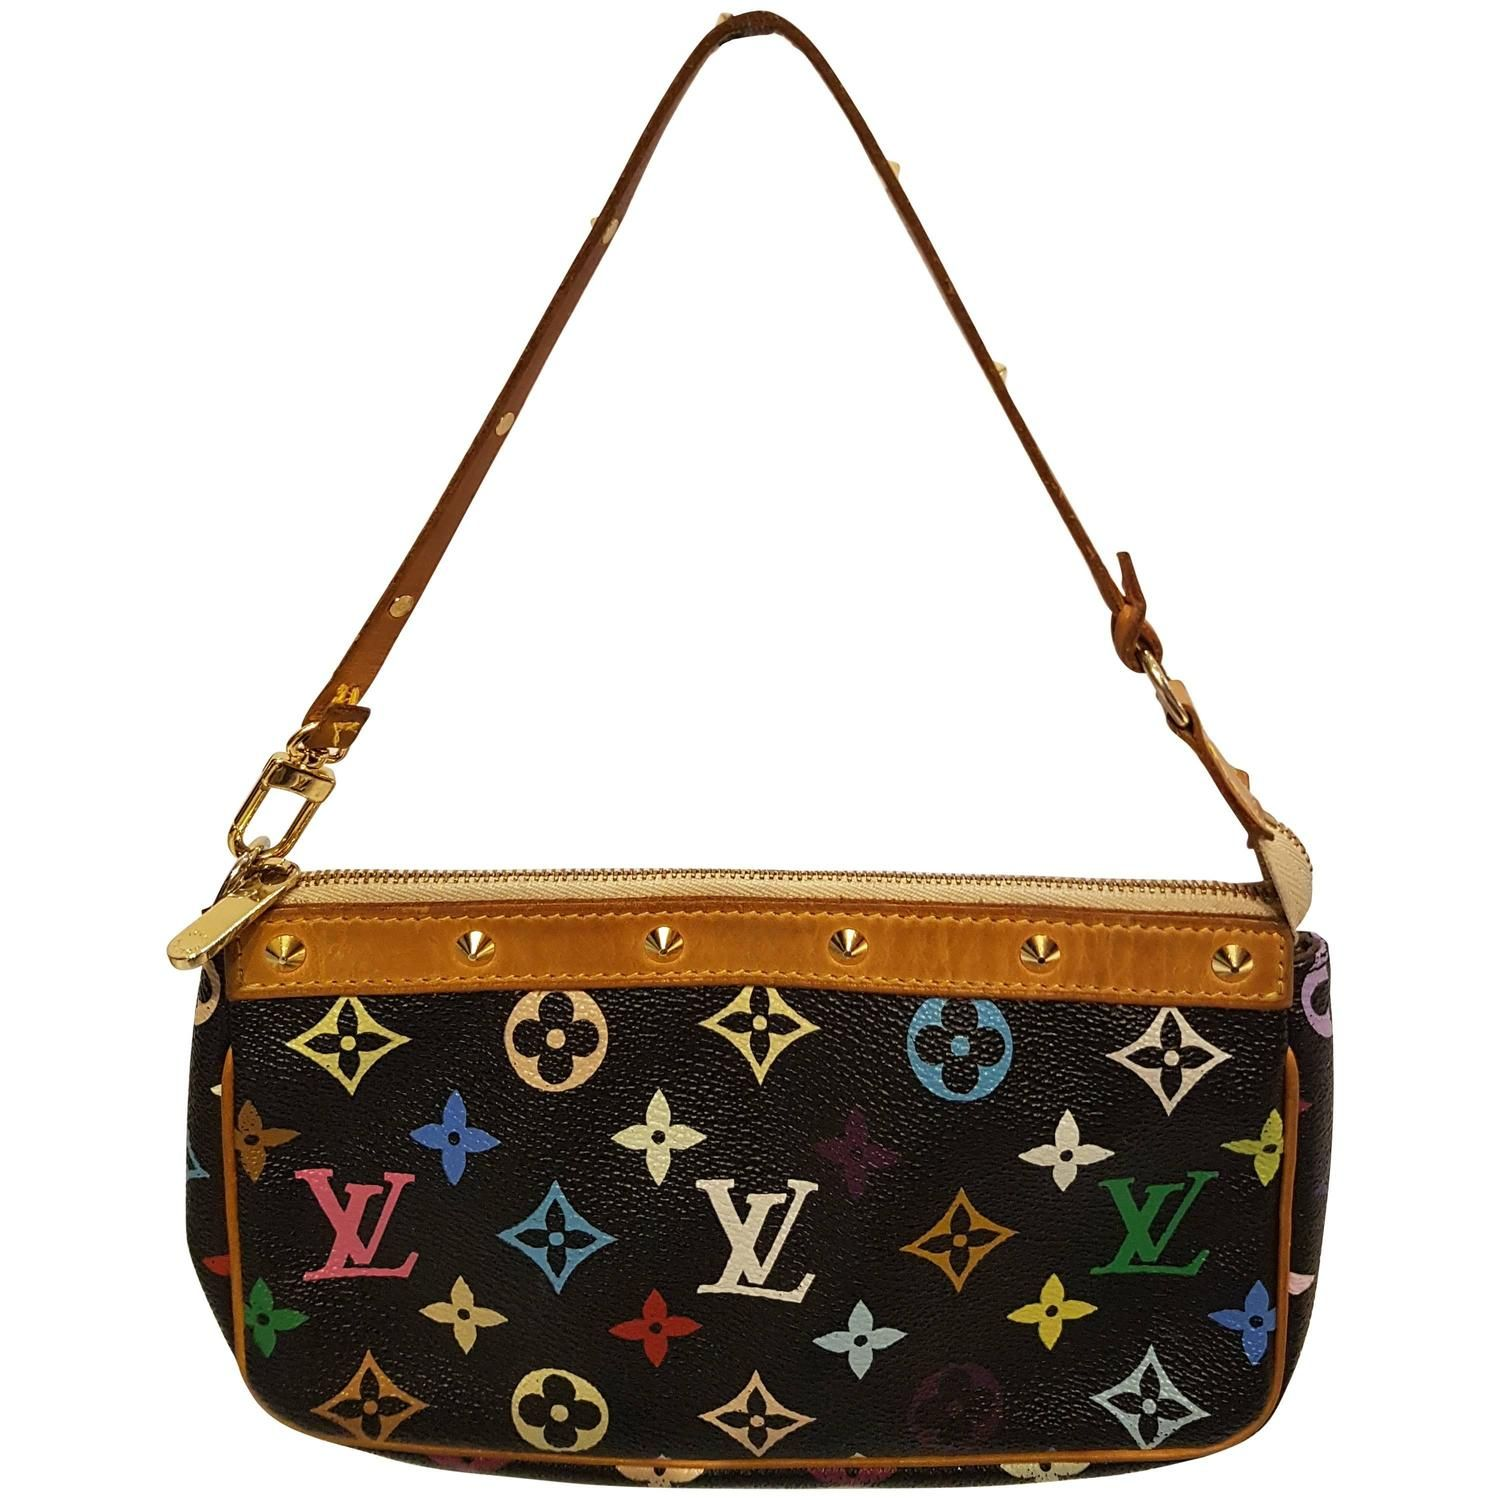 79df7a0f6d Louis Vuitton Black Multicolore Canvas Takashi Murakami Pochette Accessoires